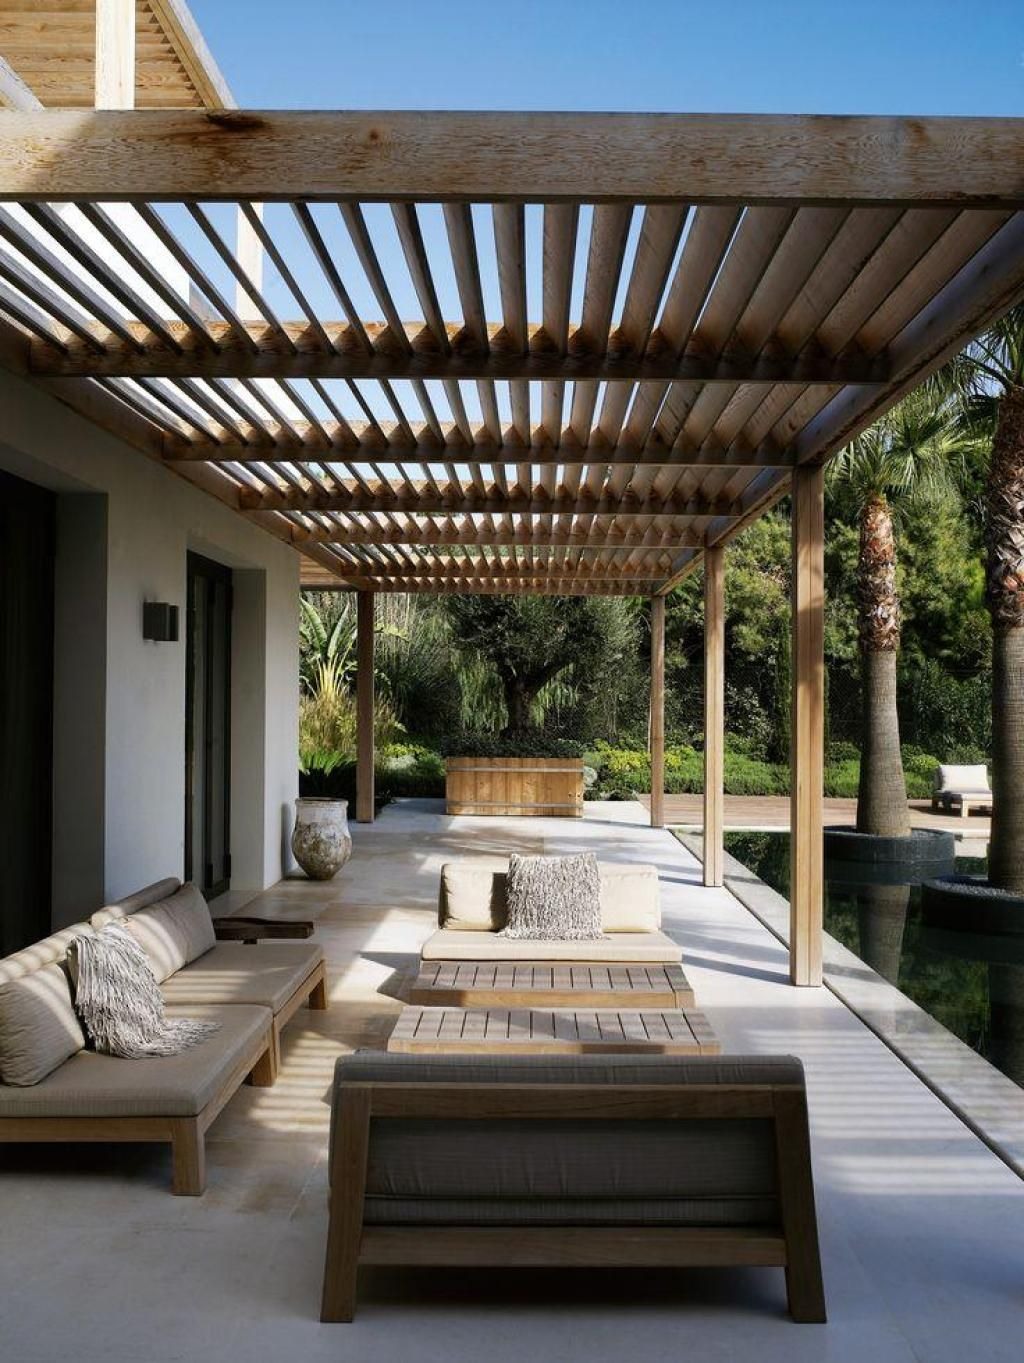 Pin by www.tapja.com on outdoor design | Pergola patio ...